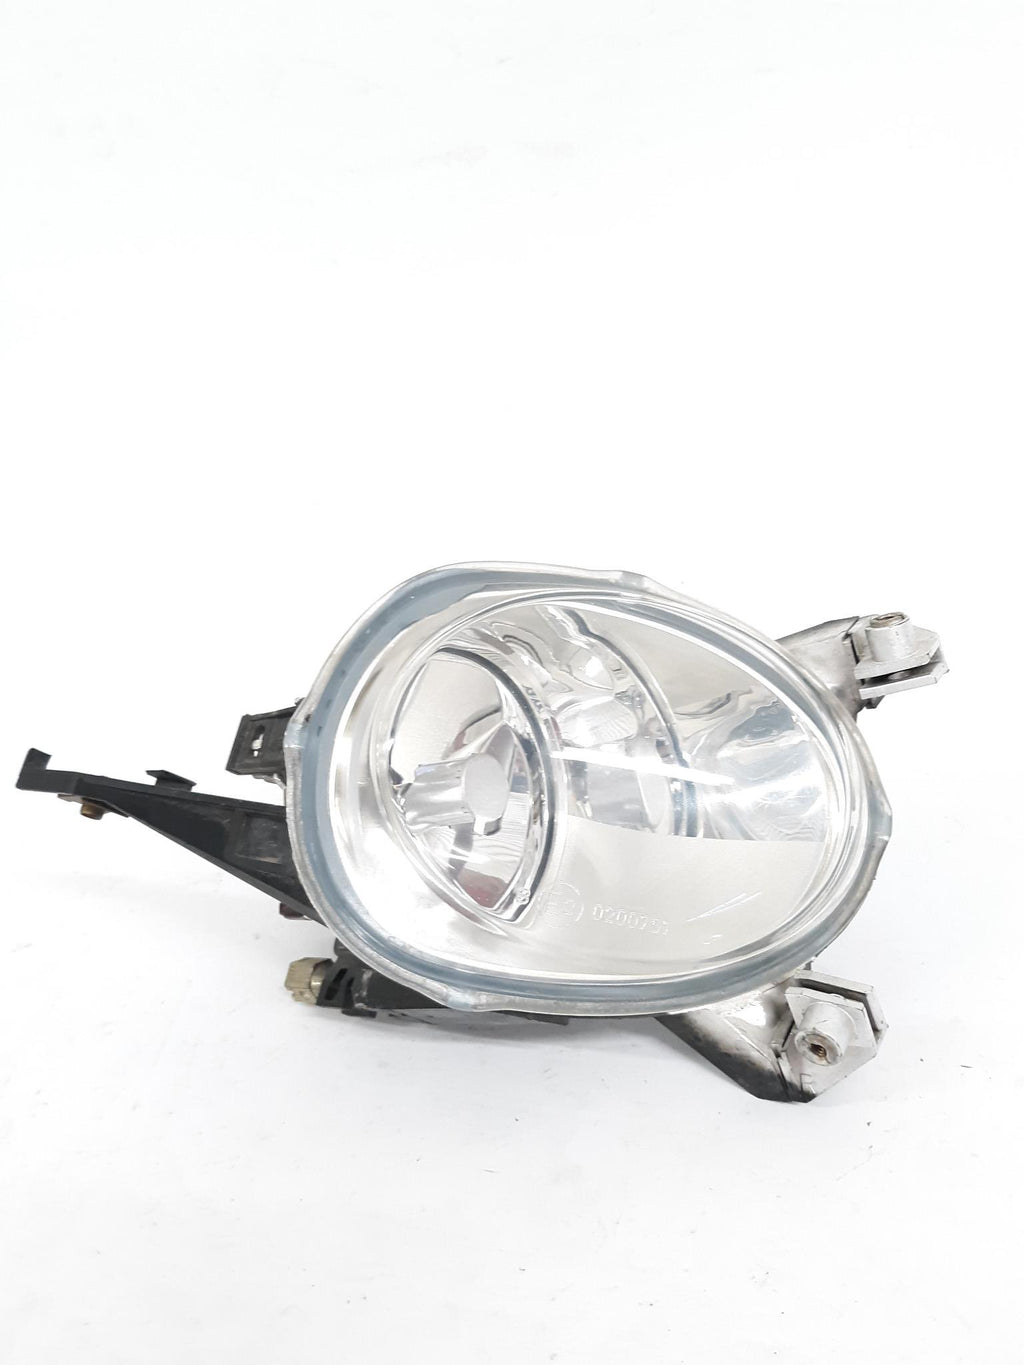 2001 - 2006 JAGUAR XKR XK8 RIGHT PASSENGER SIDE FOG LIGHT LAMP LJE5090AC OEM